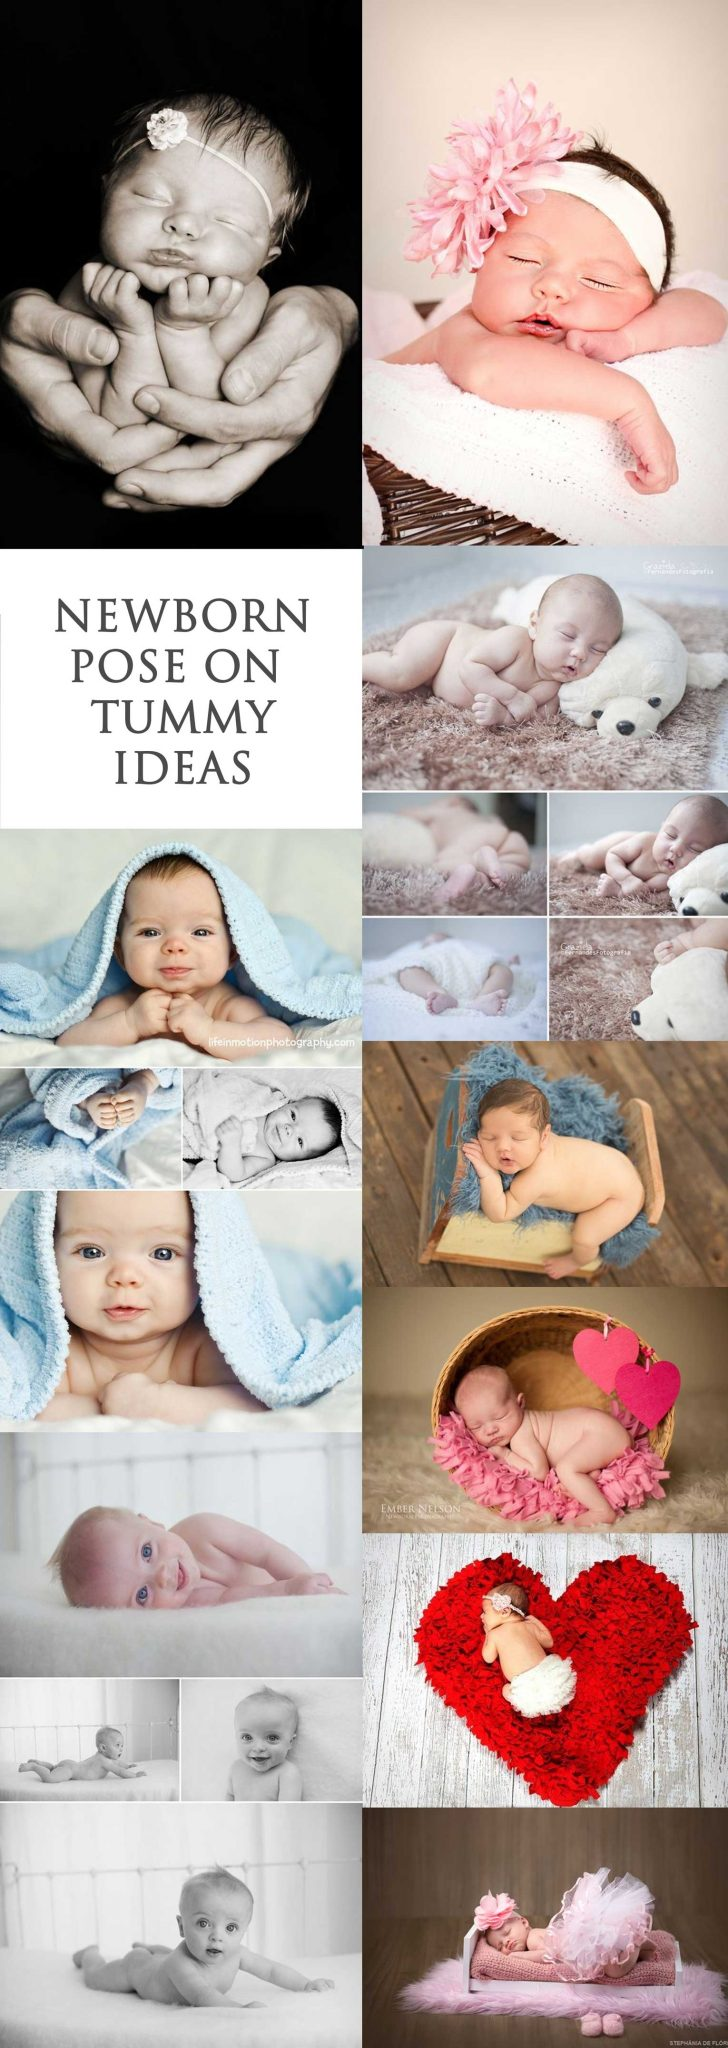 Pose Ideas on Tummy